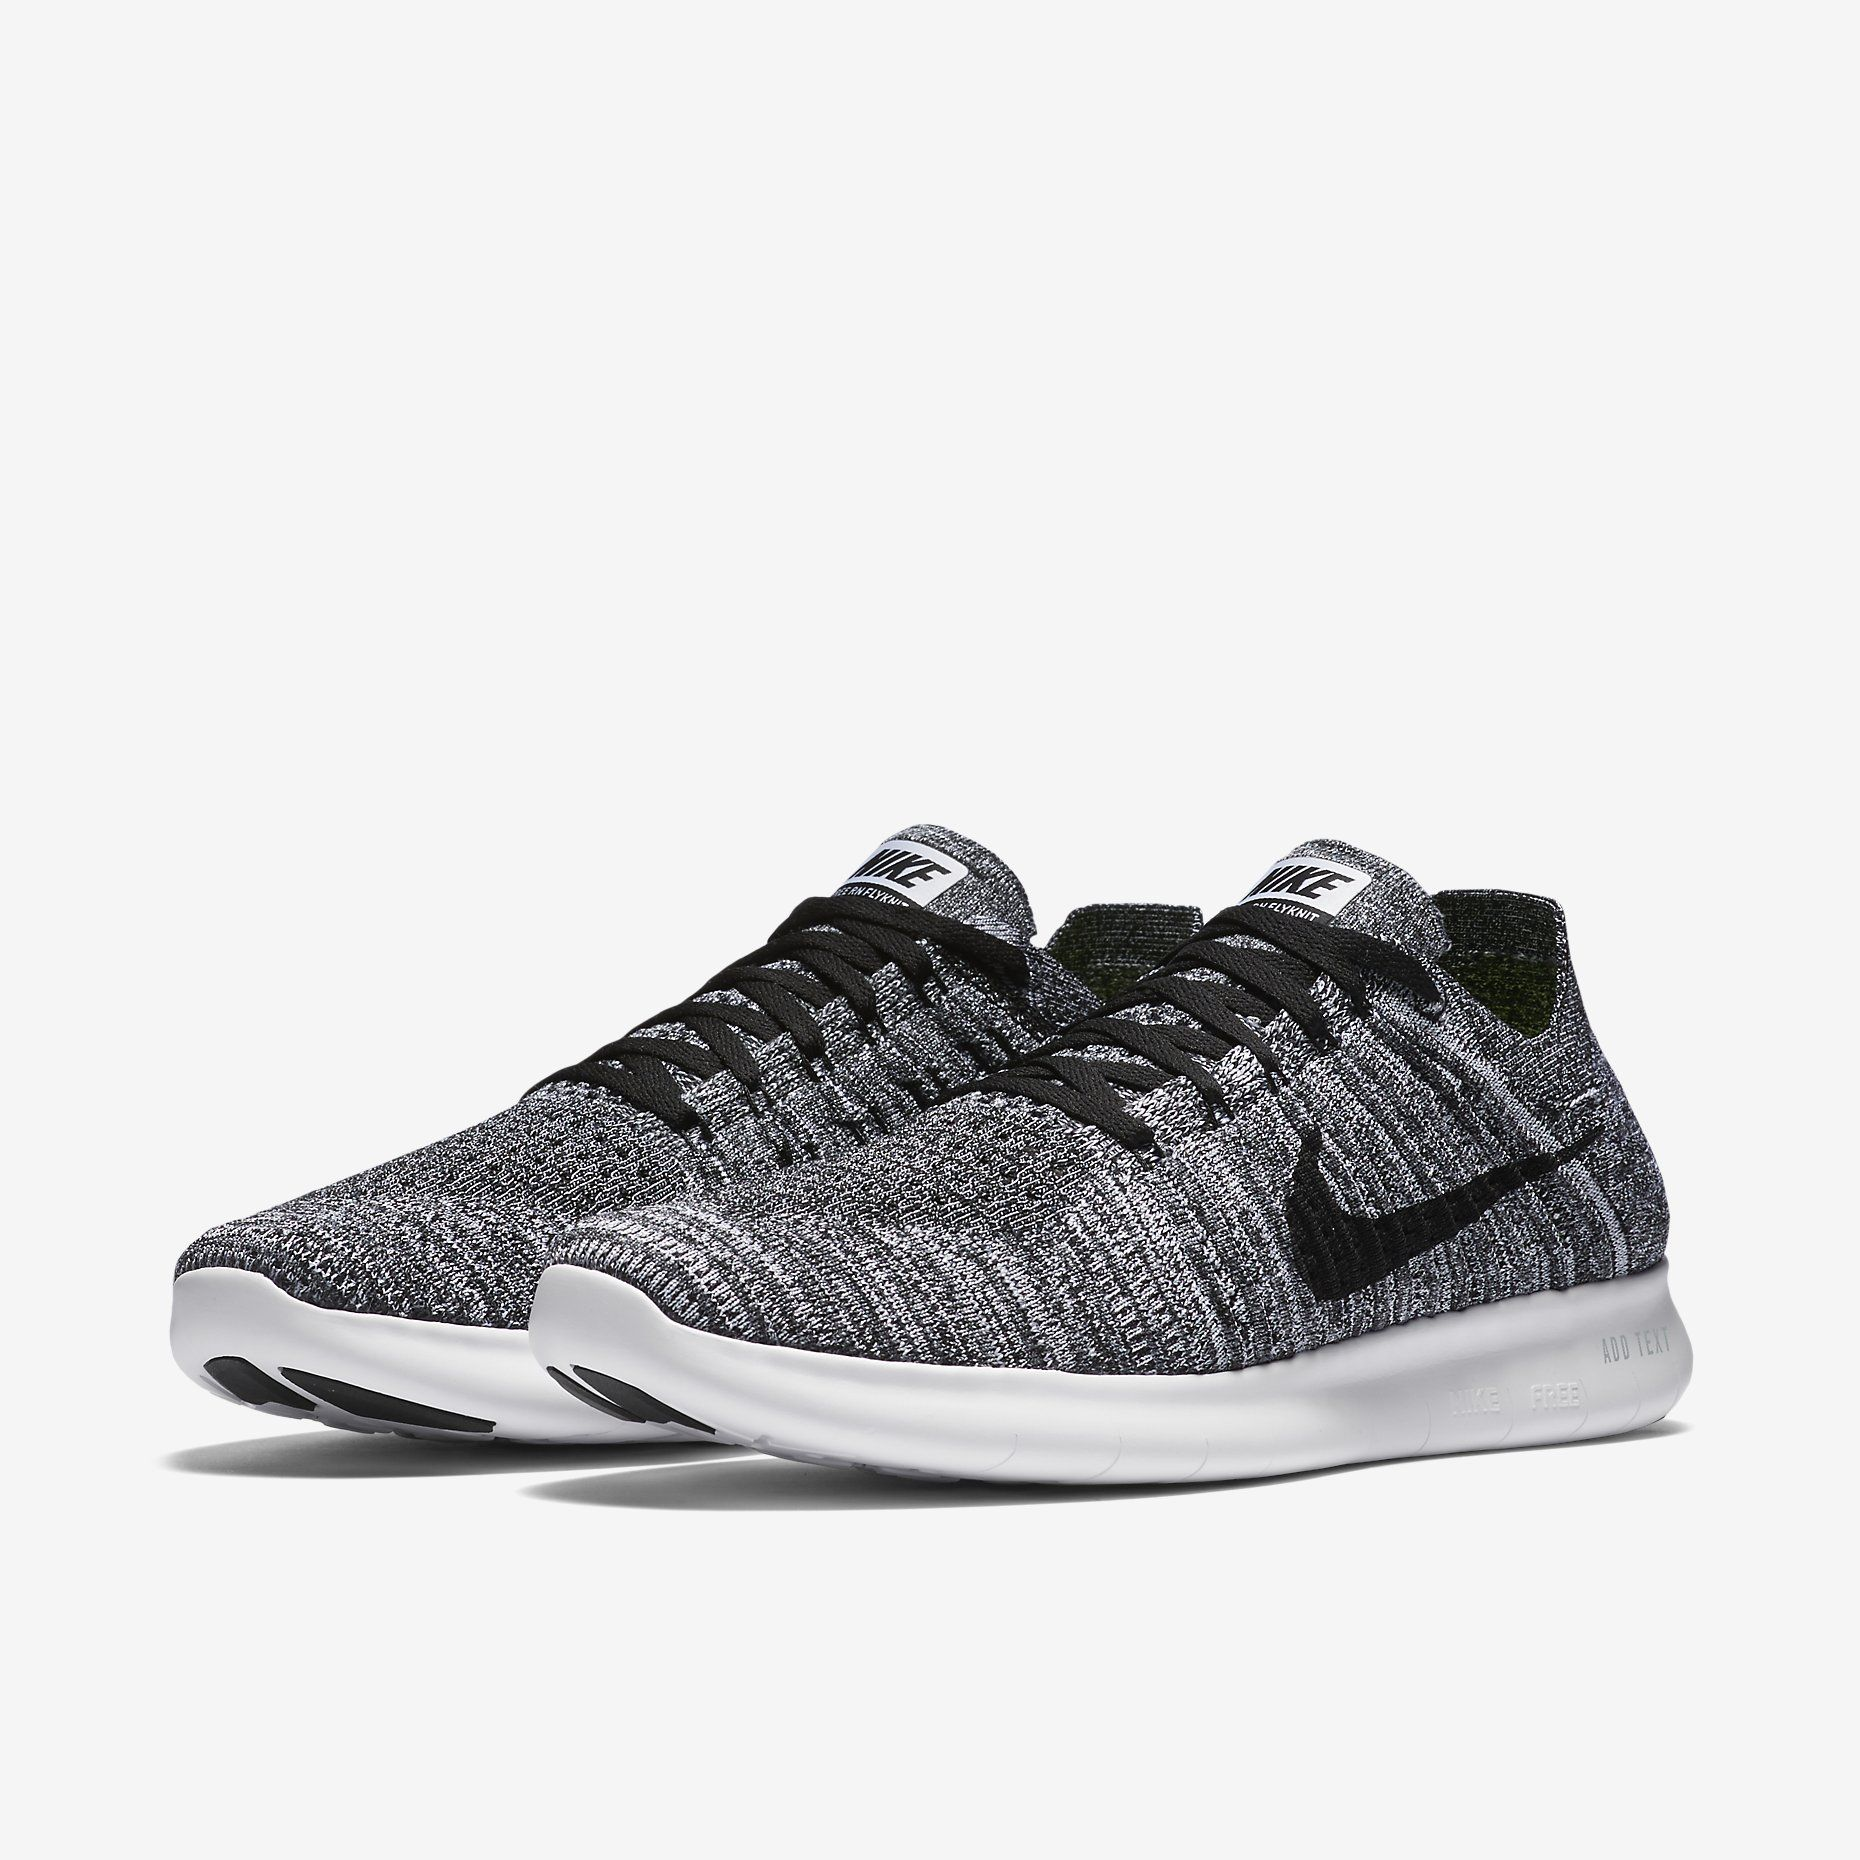 Explore Mens Running, Nike Running, and more! nike free rn flyknit ...